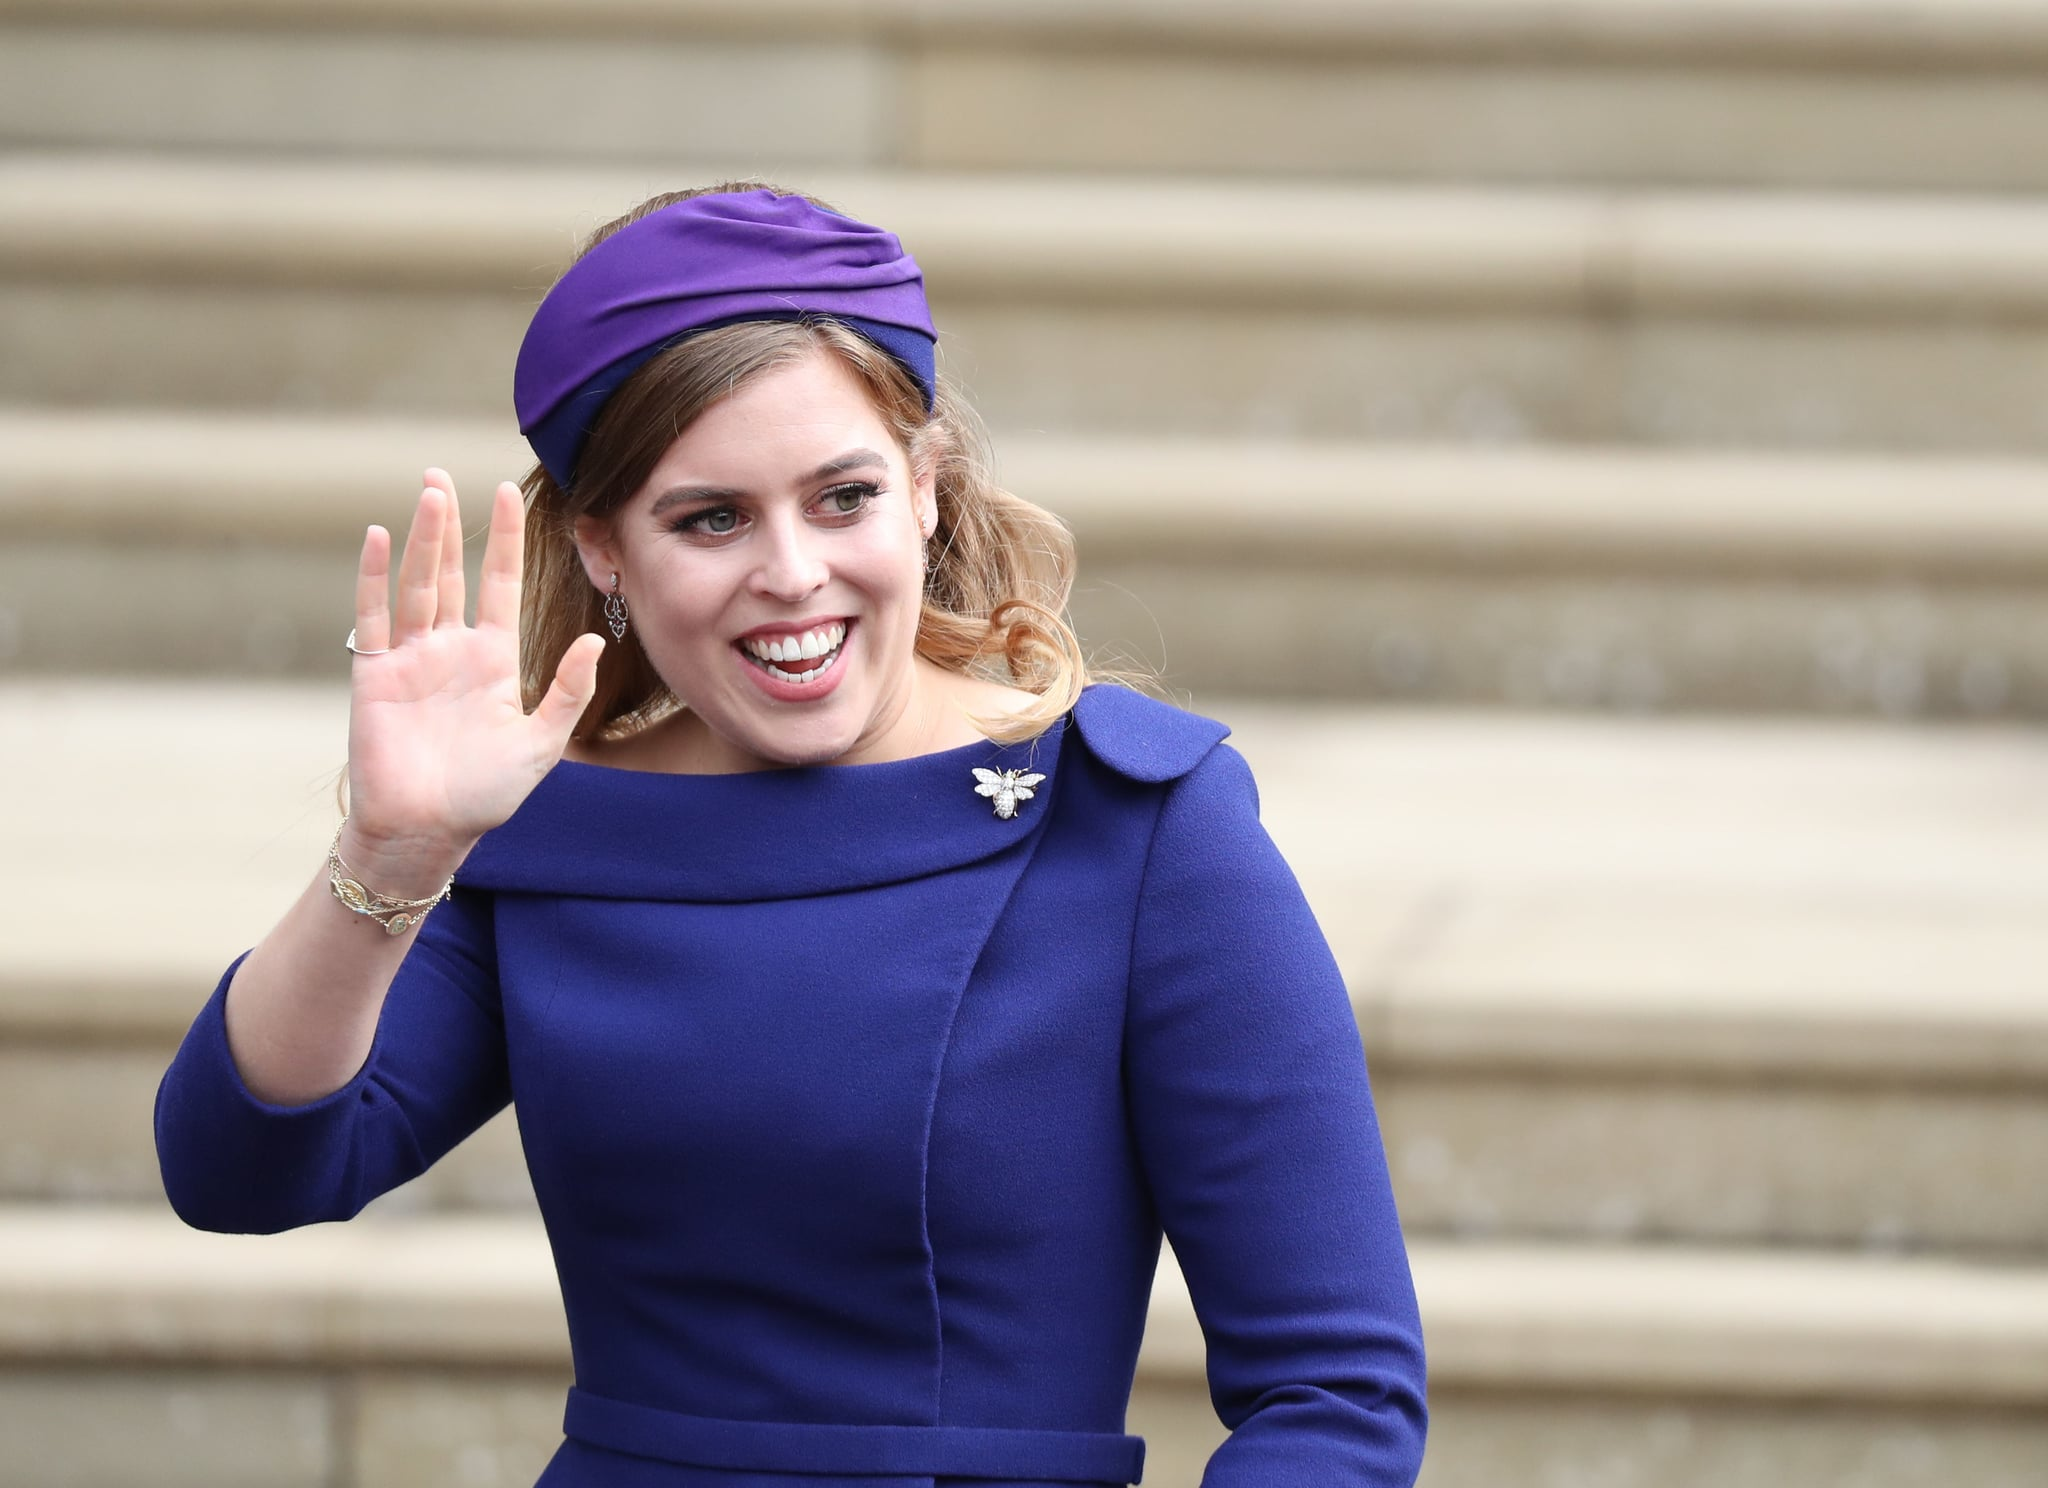 WINDSOR, ENGLAND - OCTOBER 12: Princess Beatrice of York arrives ahead of the wedding of Princess Eugenie of York to Jack Brooksbank at Windsor Castle on October 12, 2018 in Windsor, England. (Photo by Steve Parsons - WPA Pool/Getty Images)